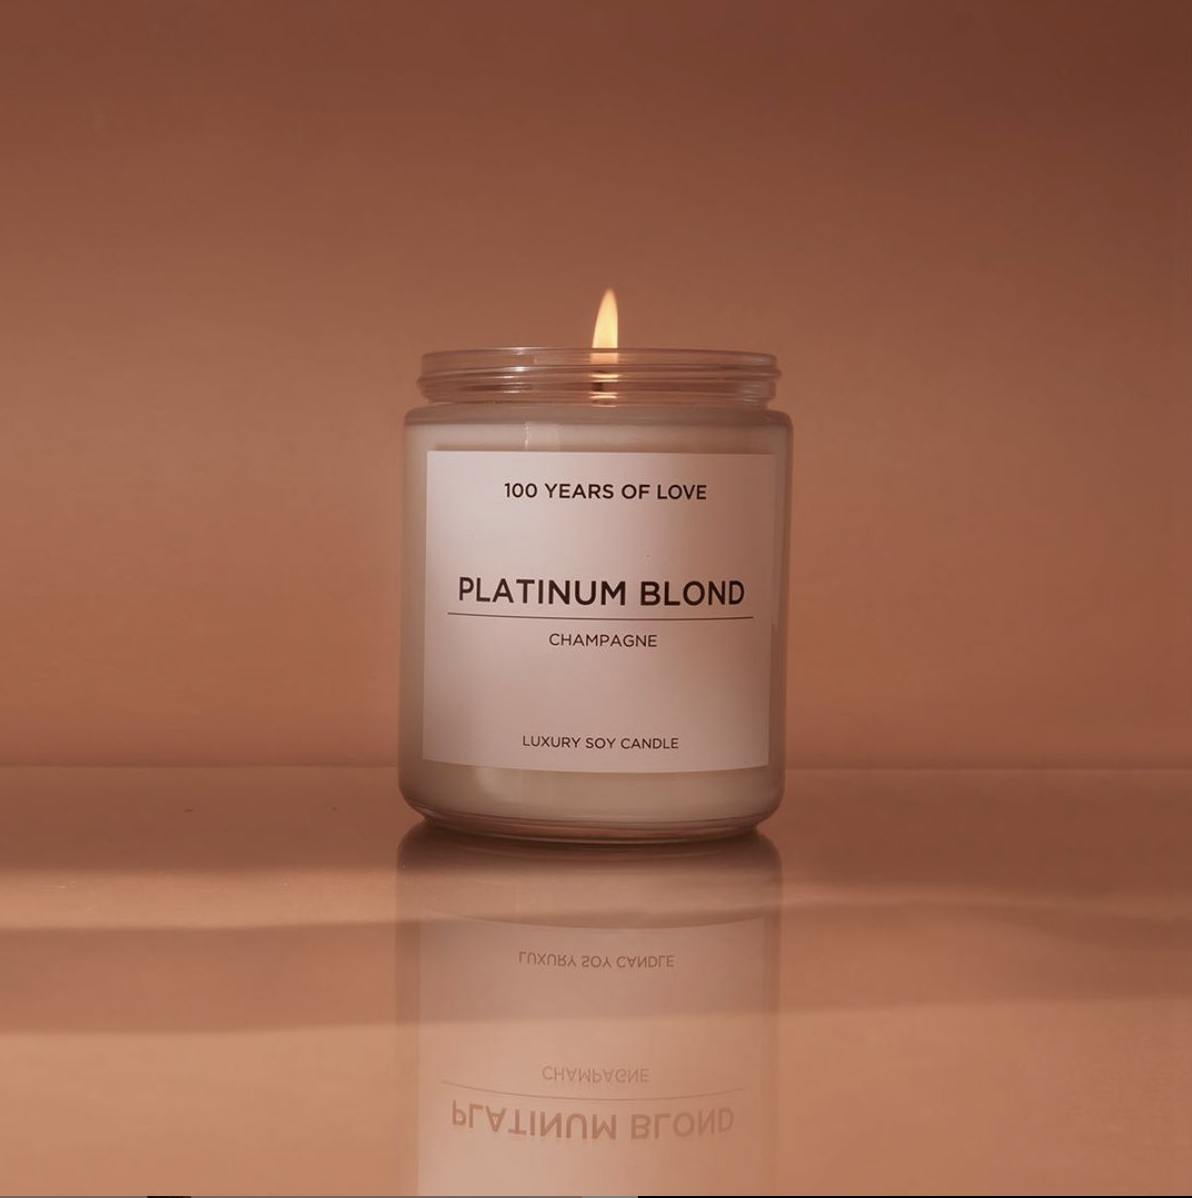 A Platinum Blond candle burning